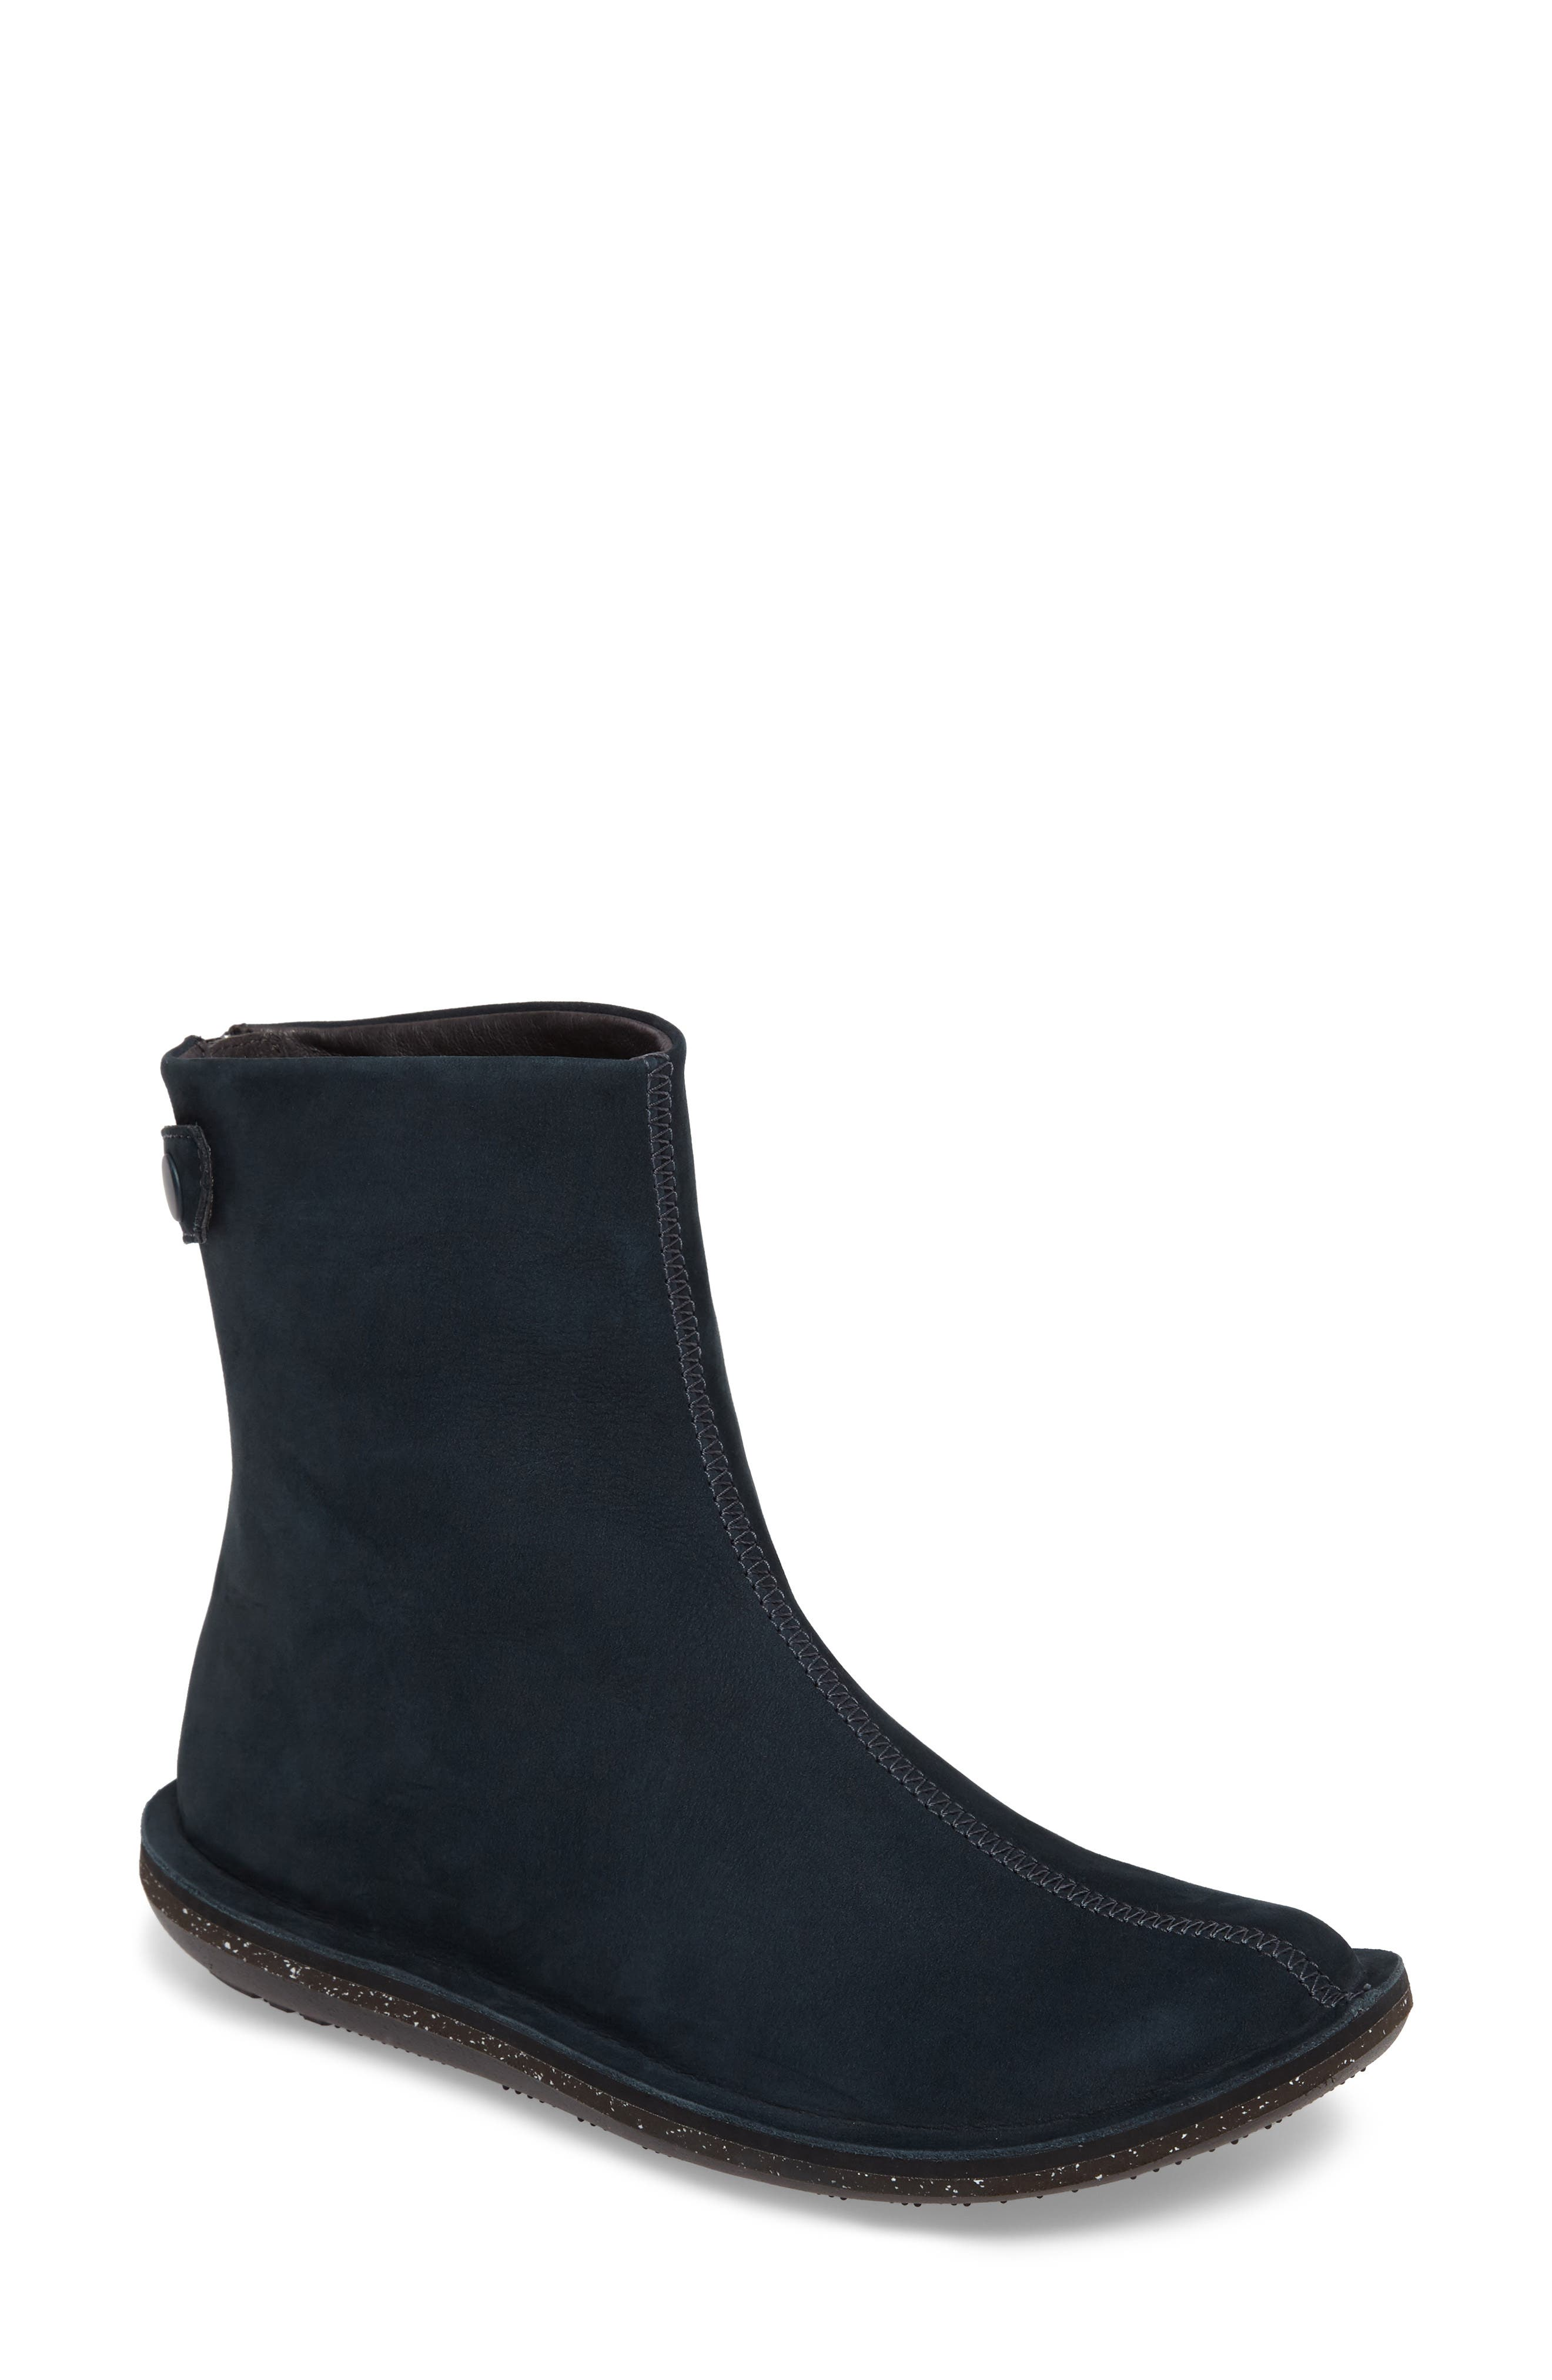 'Beetle Mid' Boot,                             Main thumbnail 1, color,                             Dark Blue Leather